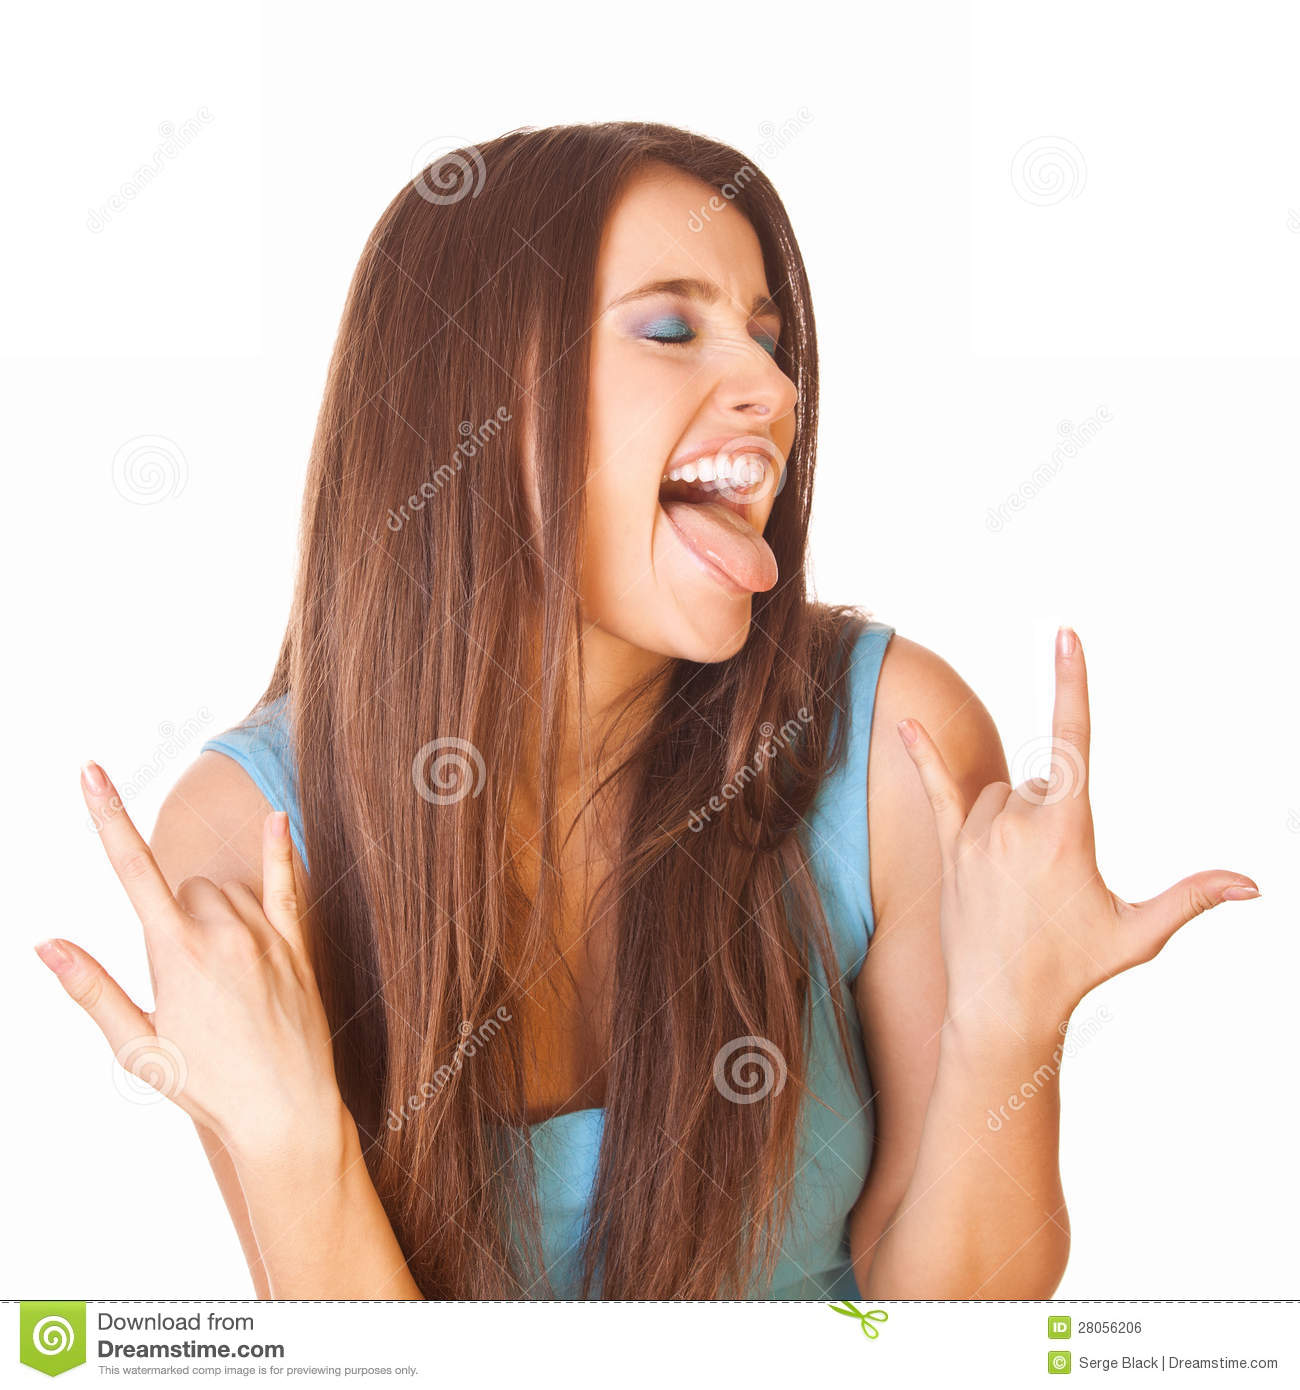 Enthusiastic and happy woman